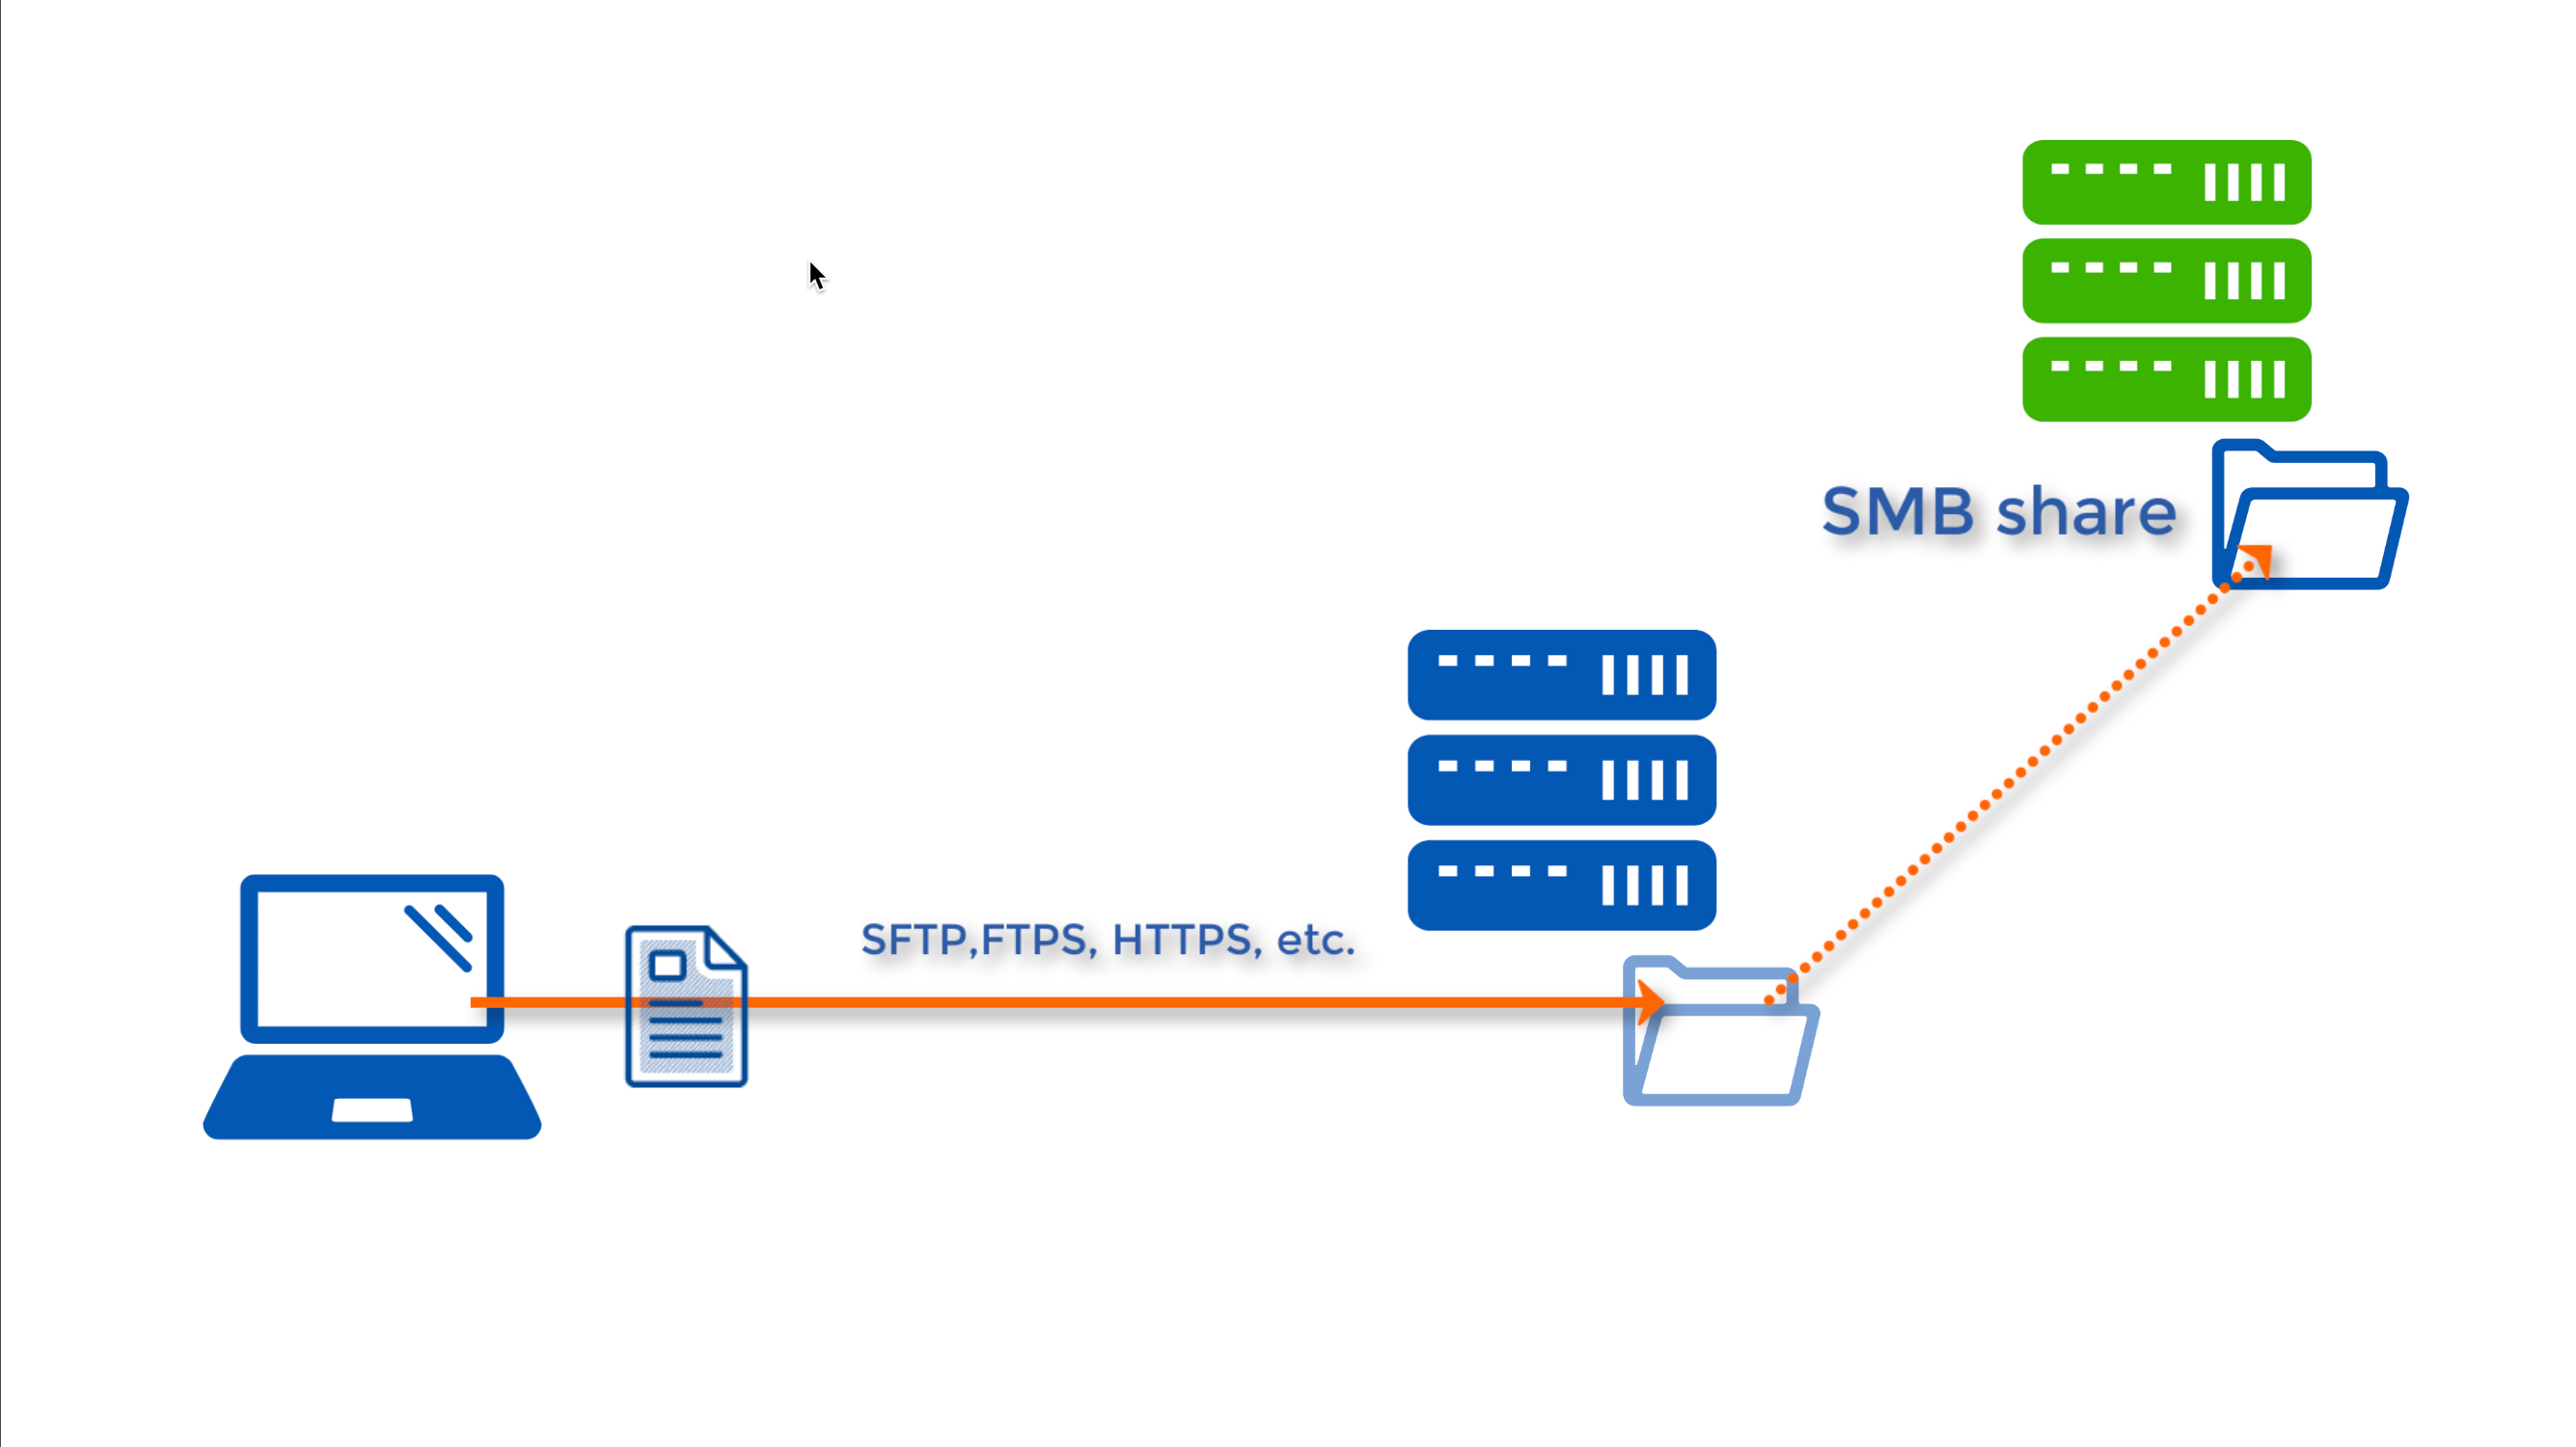 windows smb share as network storage for file transfer server - thumbnail